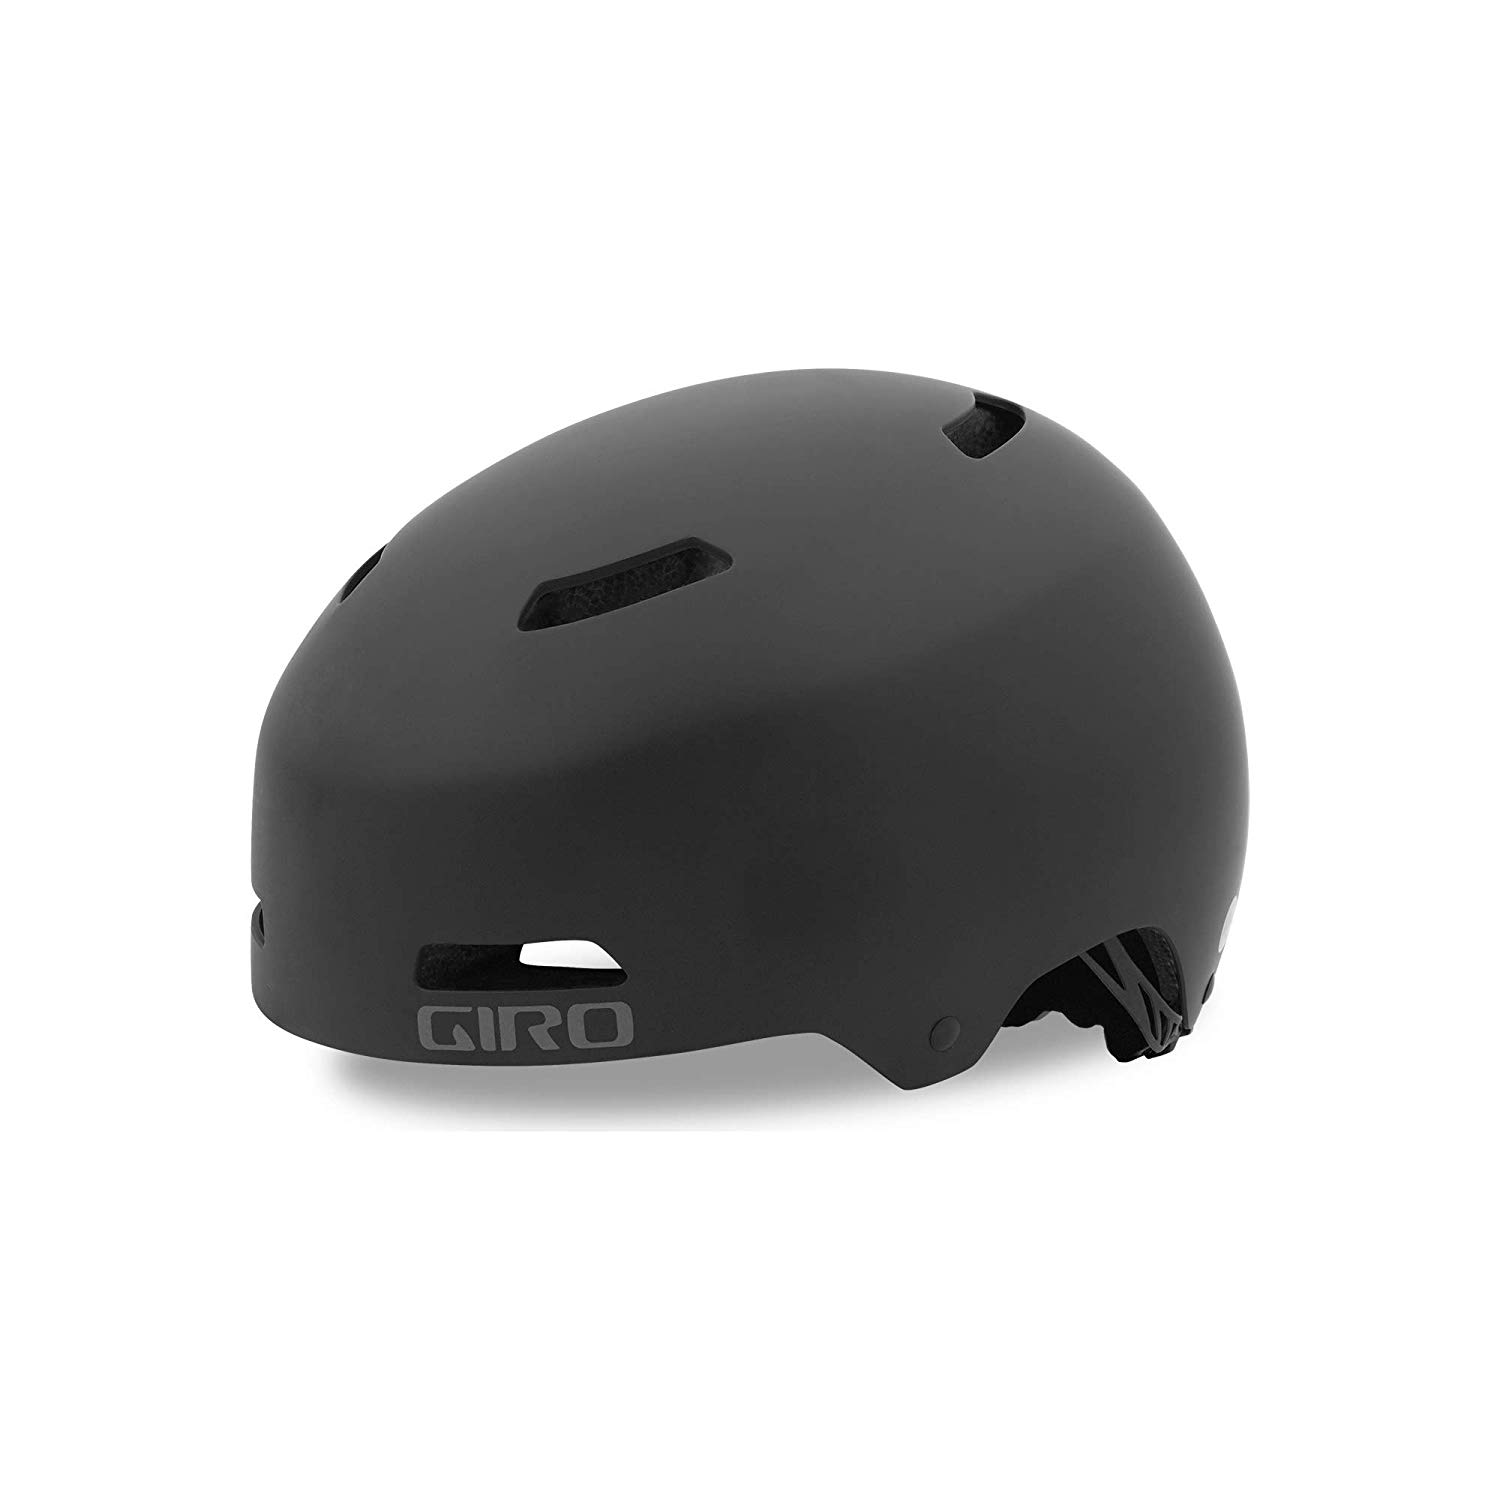 Lot 10 - Giro Unisex's Quarter FS Cycling Helmet, Matt Black, Large (59-63 cm)